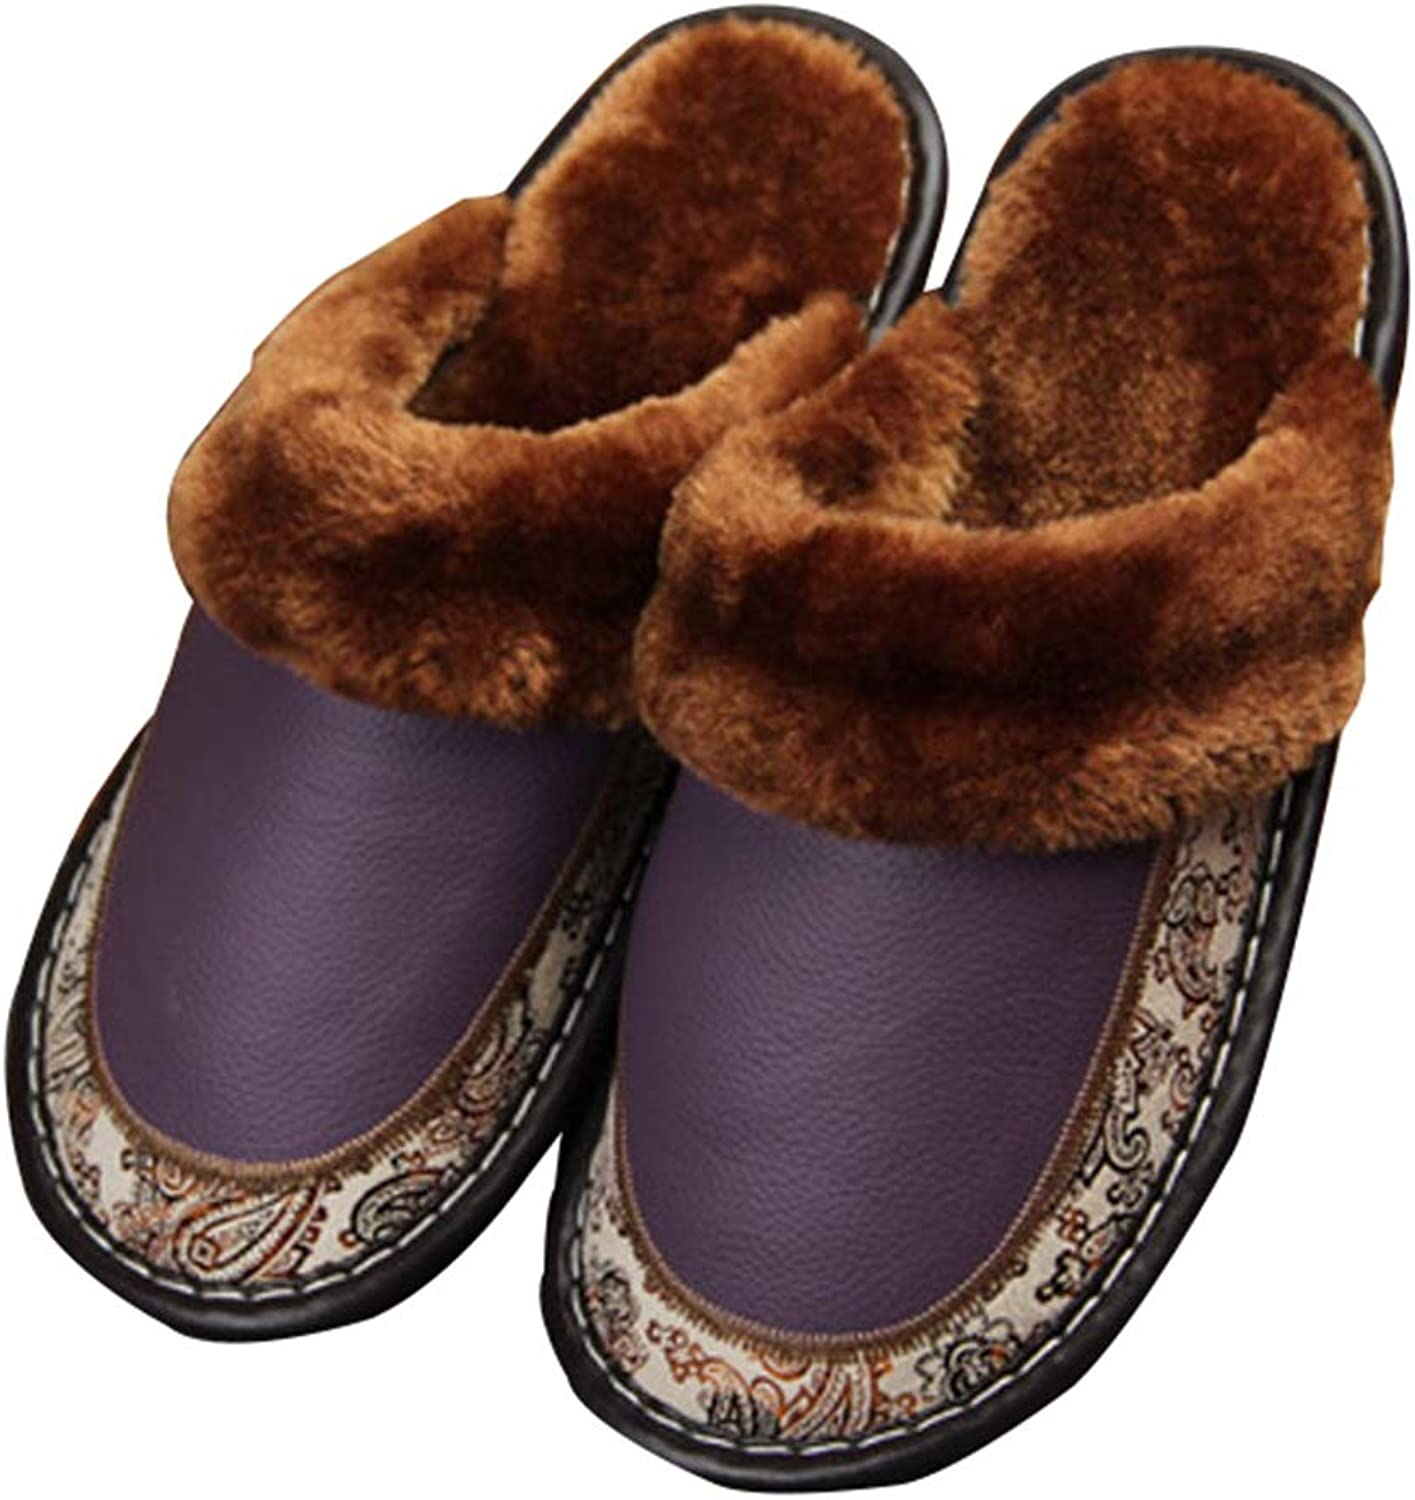 Unisex House Slippers Genuine Leather Winter Warm Fuzzy Lined Scuff Slippers